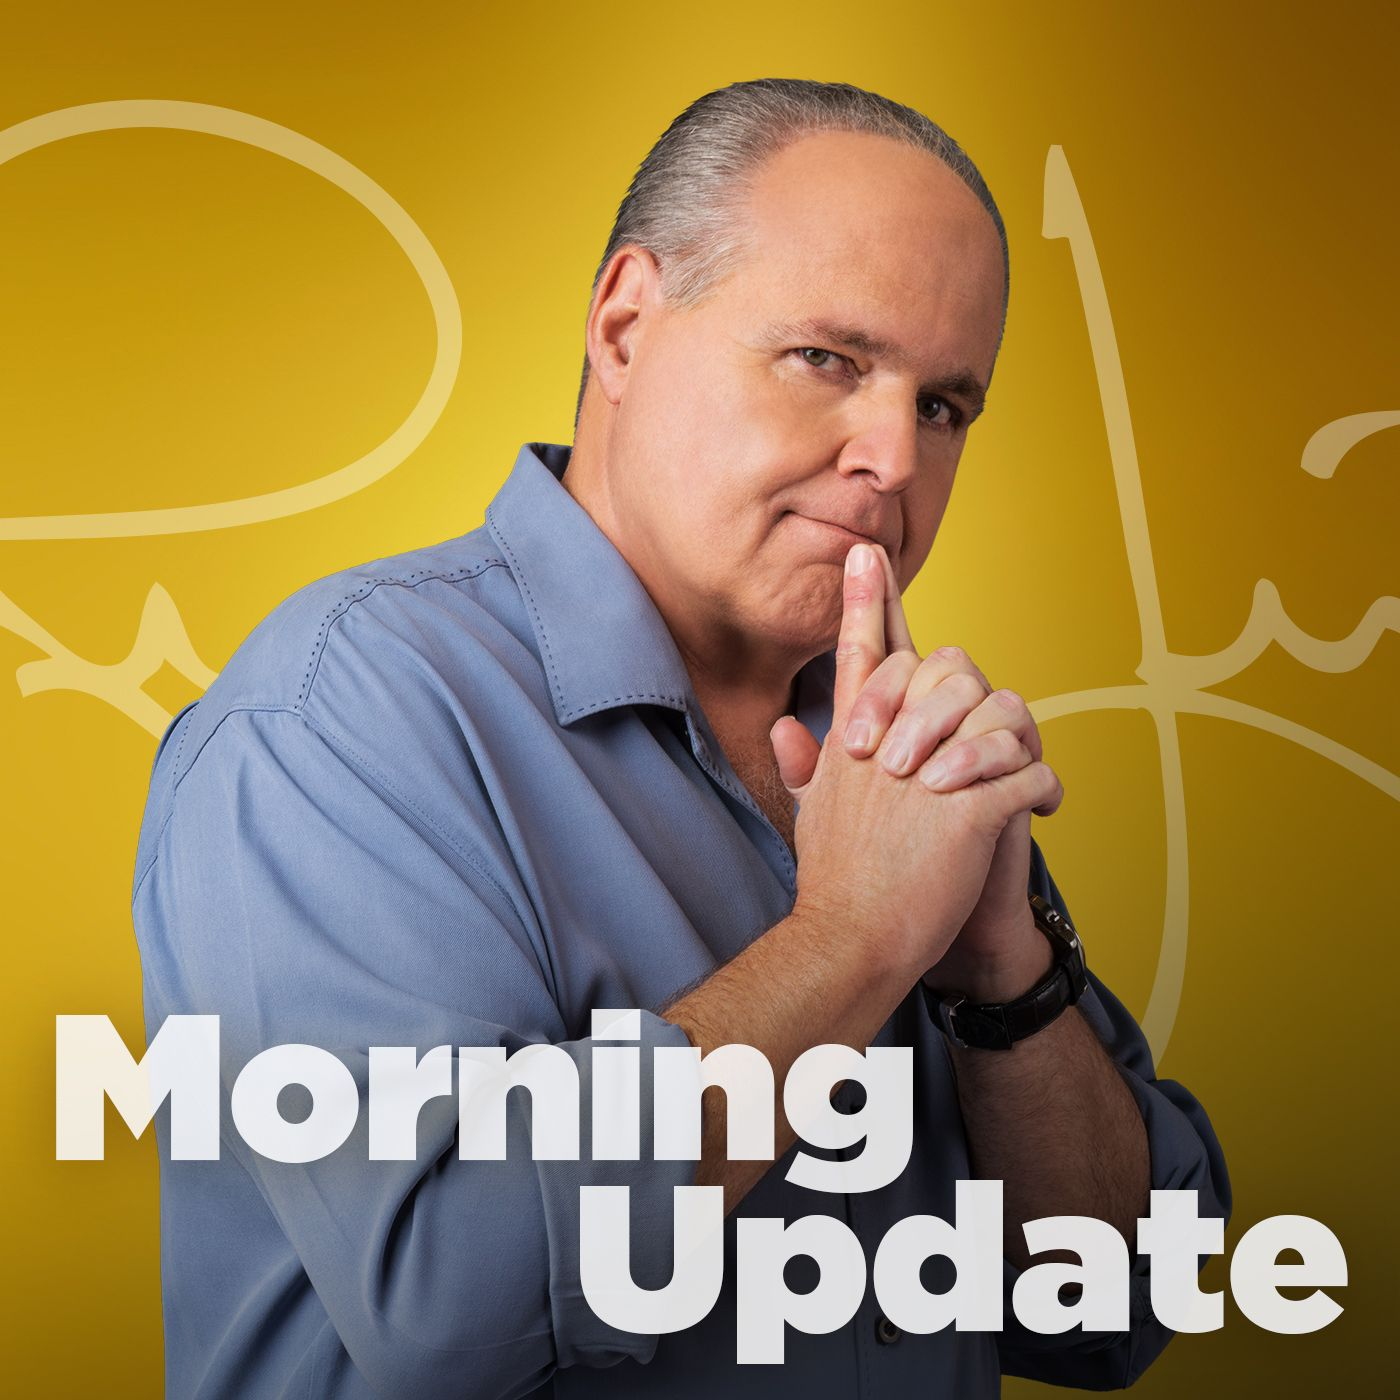 Rush Limbaugh Jun 15, 2020